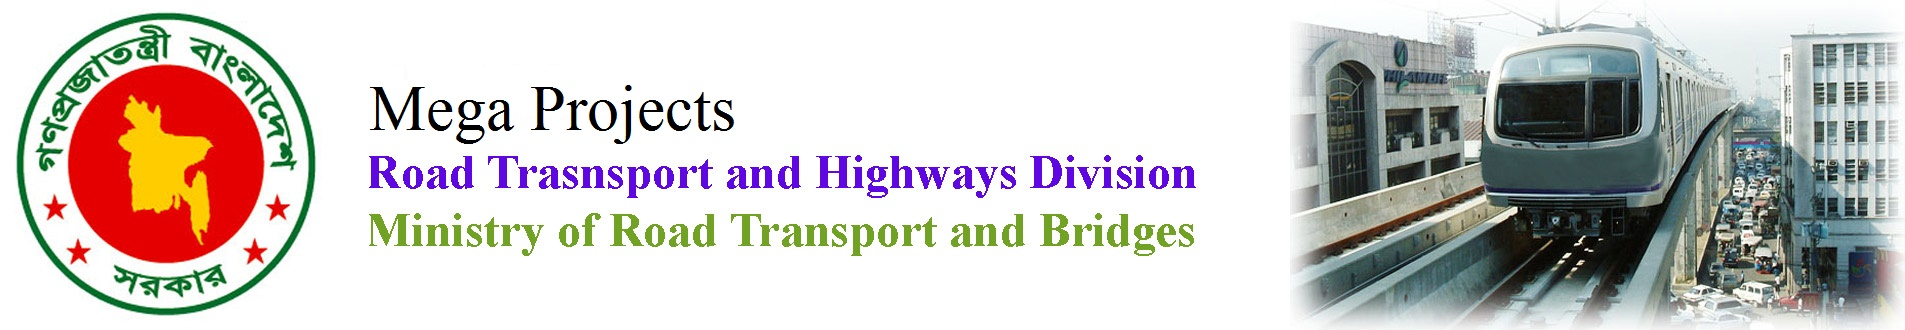 Road Transport and Highways Division